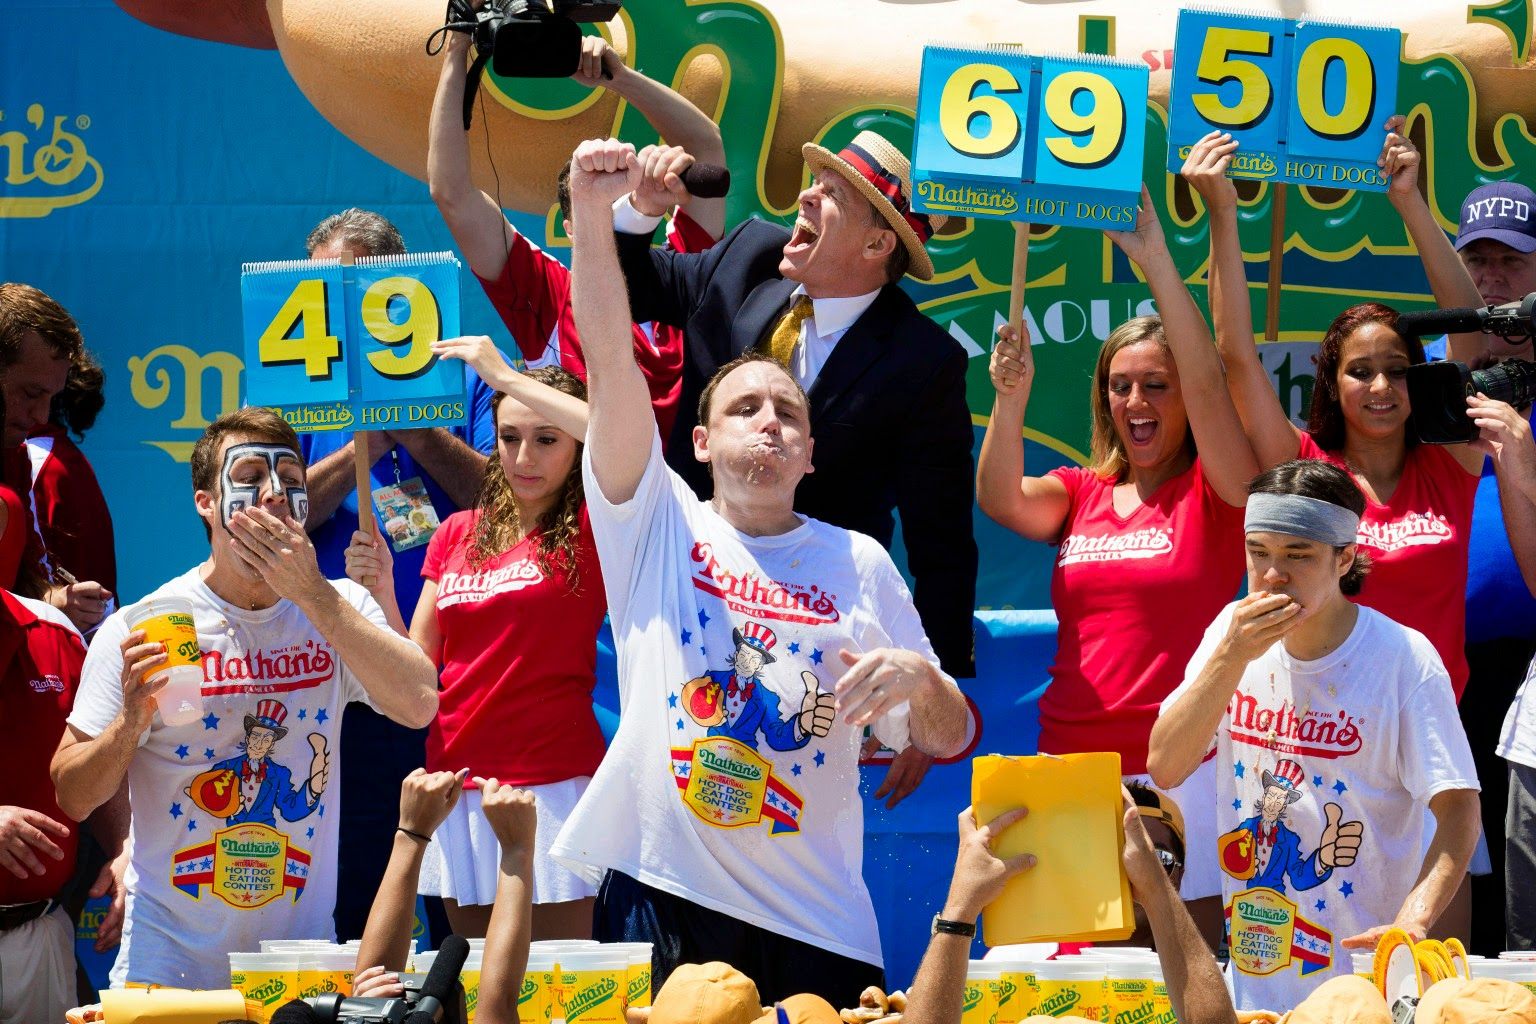 http://www.huffingtonpost.com/2013/07/04/nathans-hot-dog-eating-contest_n_3546698.html